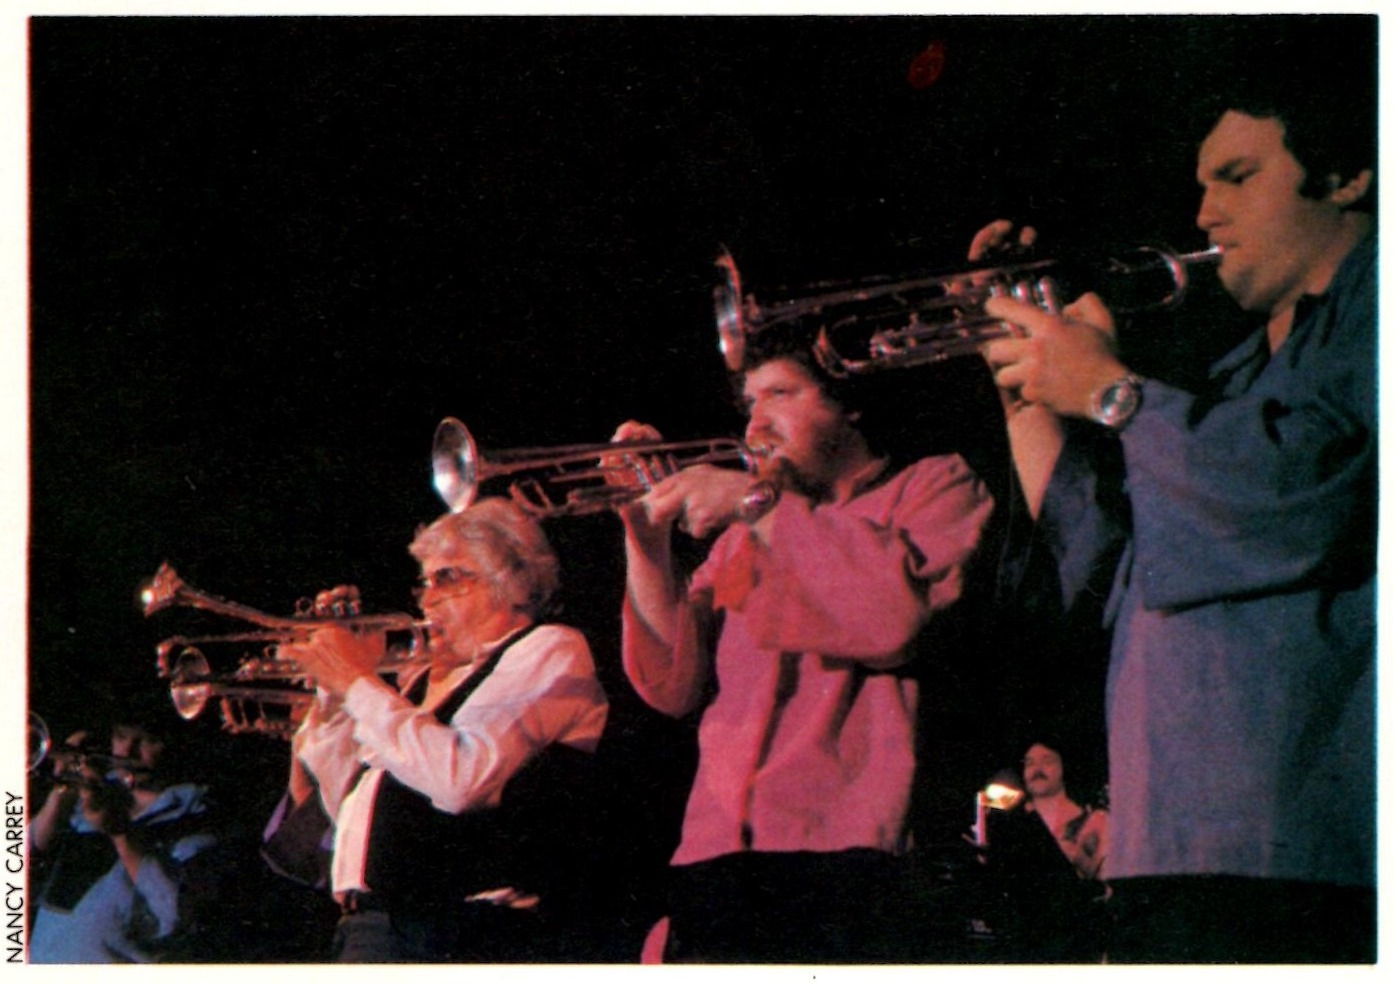 Alan Wise, right, performing with Maynard Ferguson (photo from Downbeat Magazine July 1980)